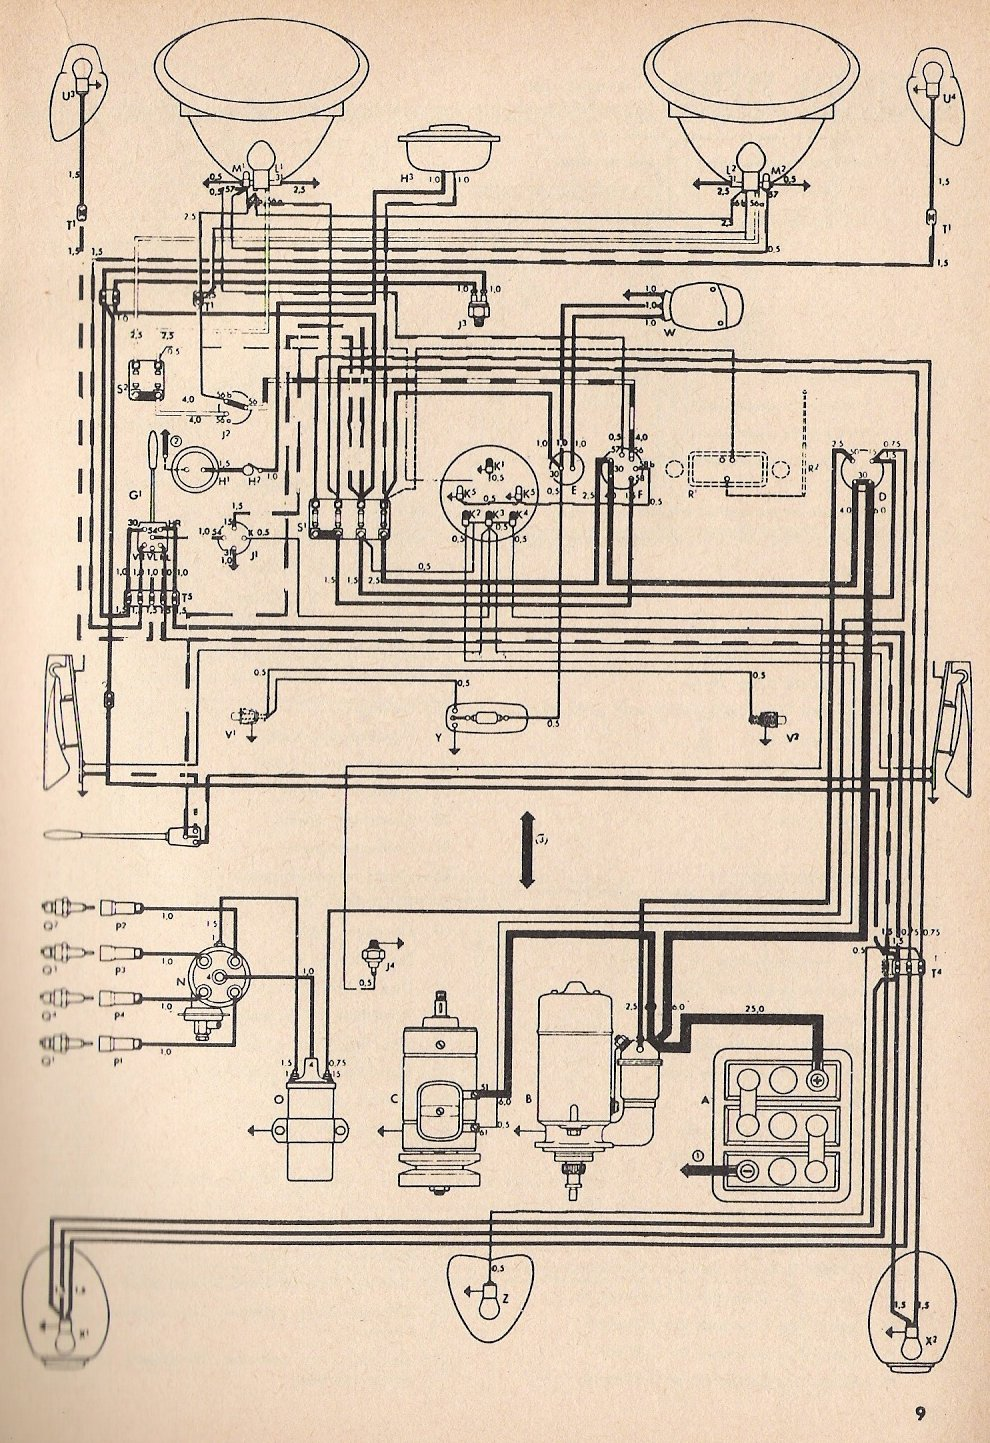 bug_toaug55 1955 beetle wiring diagram thegoldenbug com beetle wiring diagram to fix a/c fan at readyjetset.co